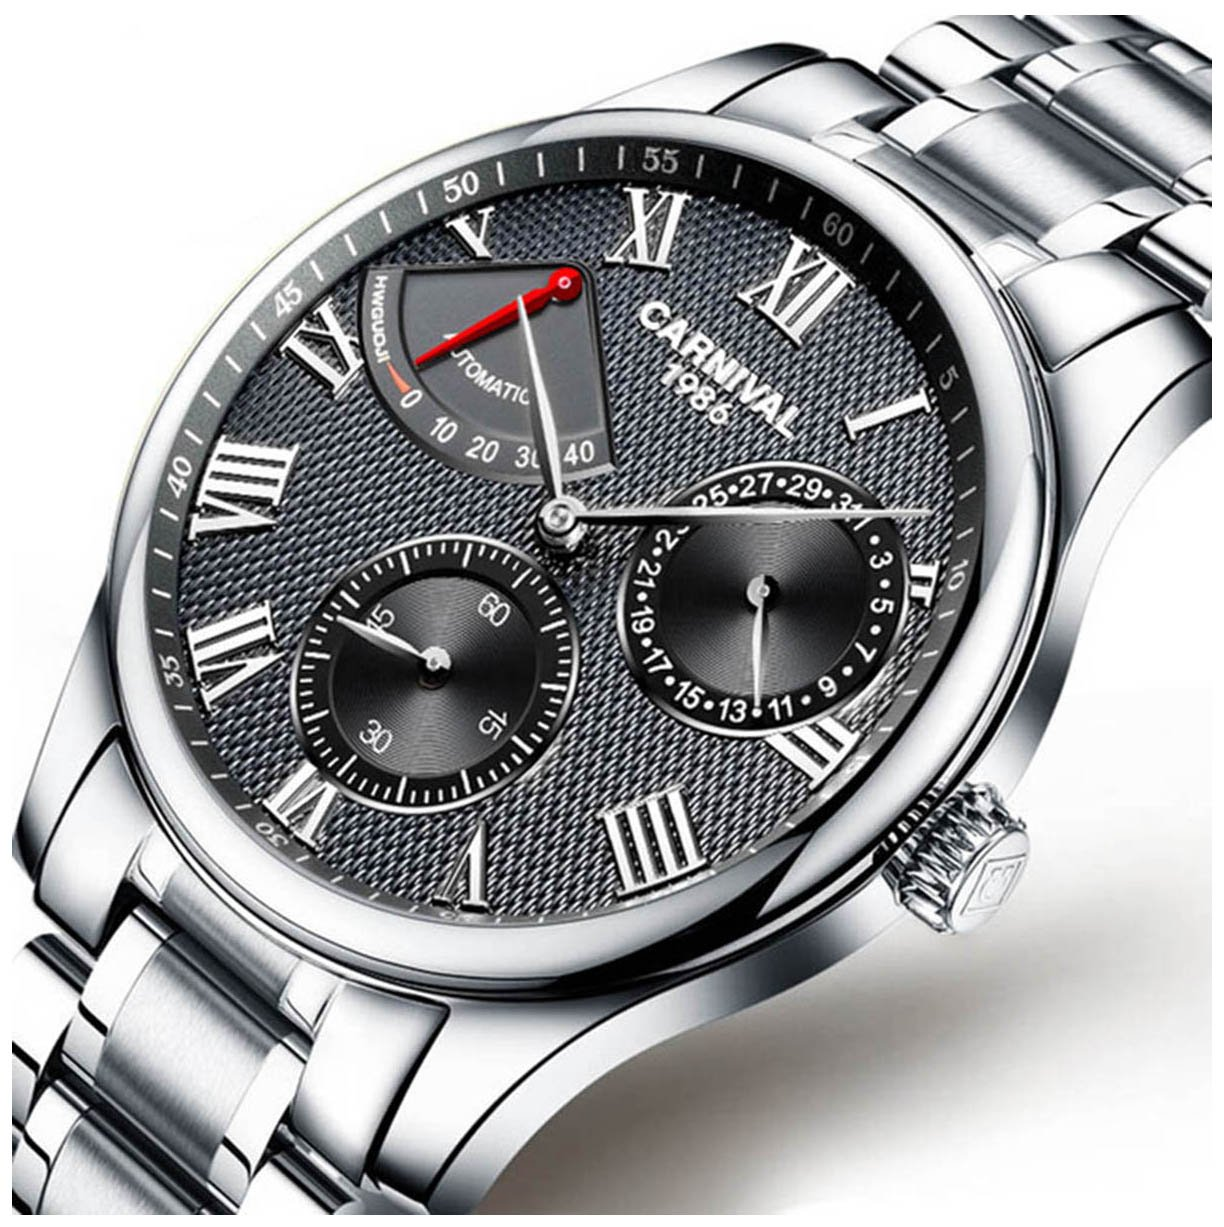 Mens Power Reserve Display Automatic Mechanical Watches Full Stainless Steel Waterproof Swiss Watches (Silver Black)